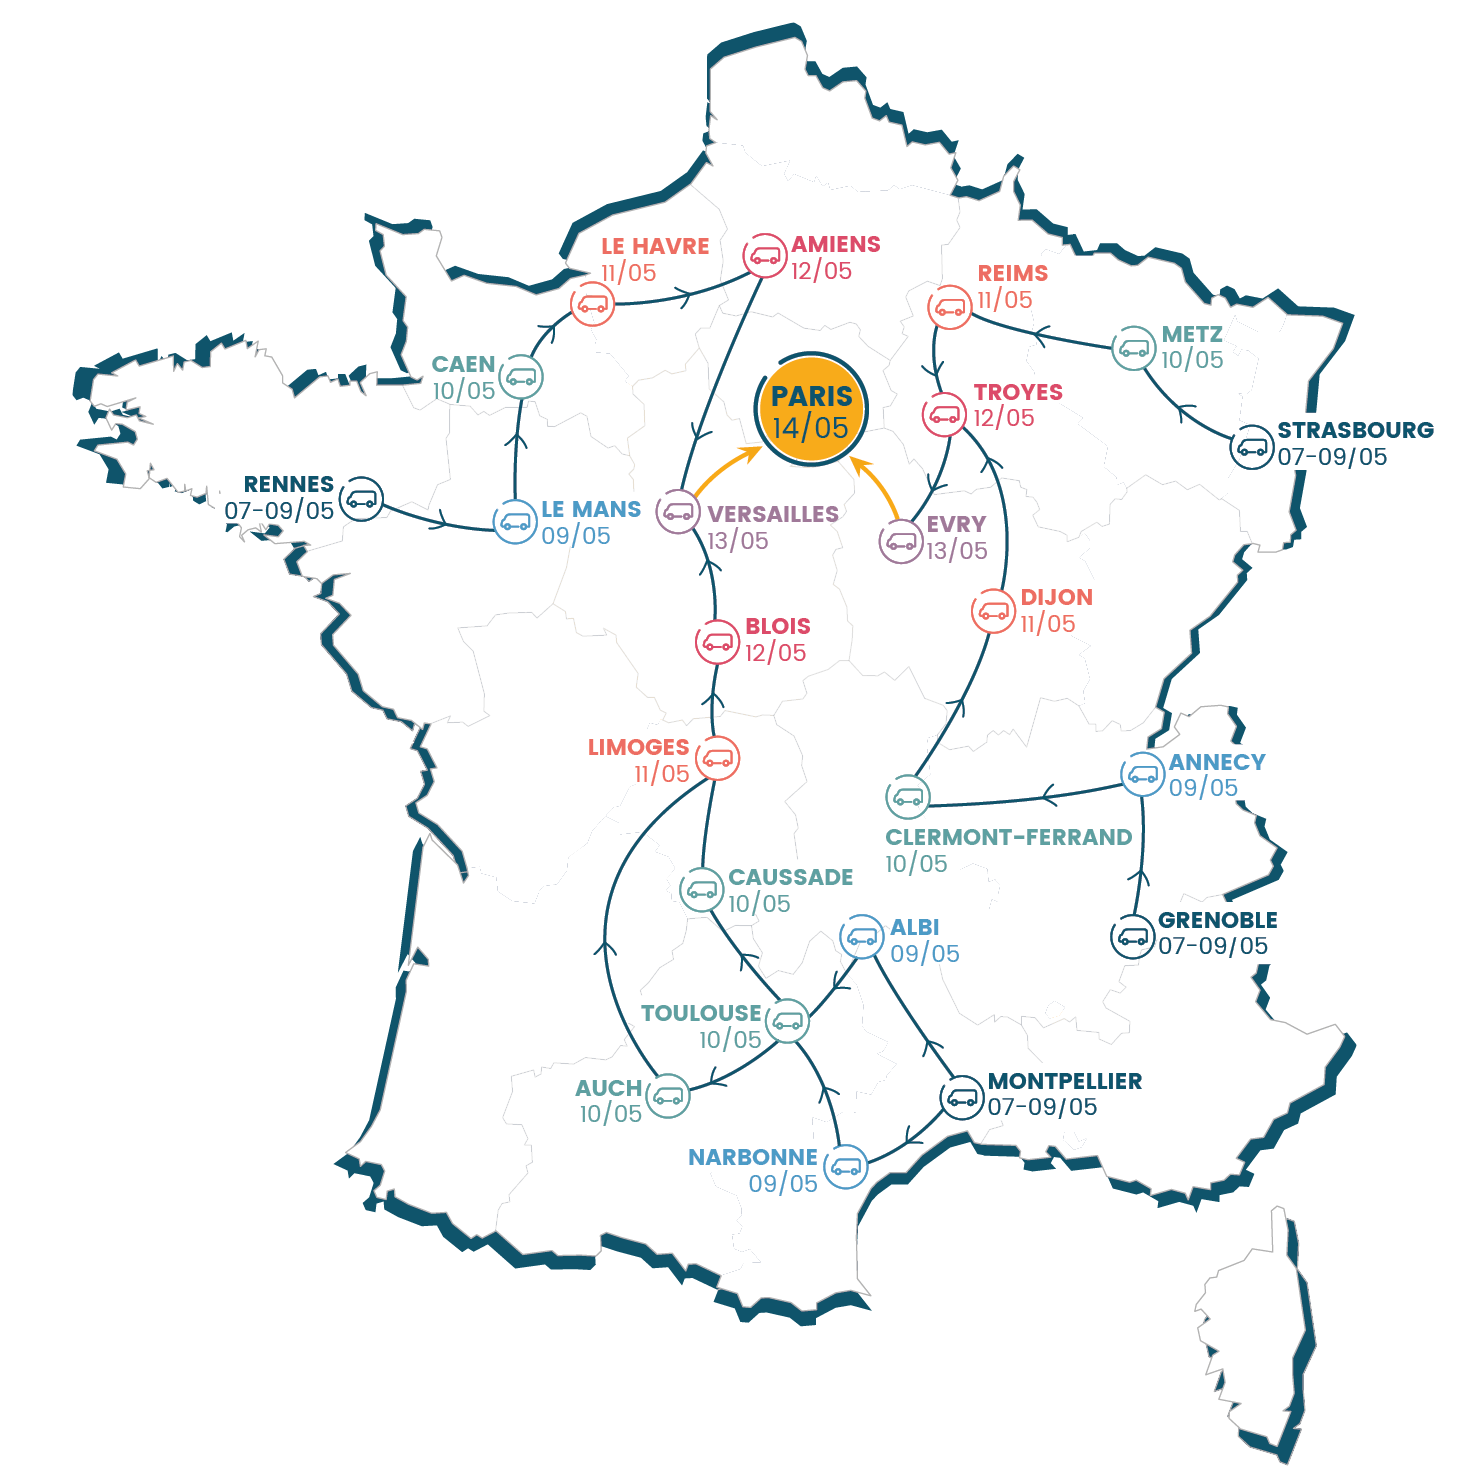 carte de france des étapes de la Caravane APF France handicap en route vers nos droits !